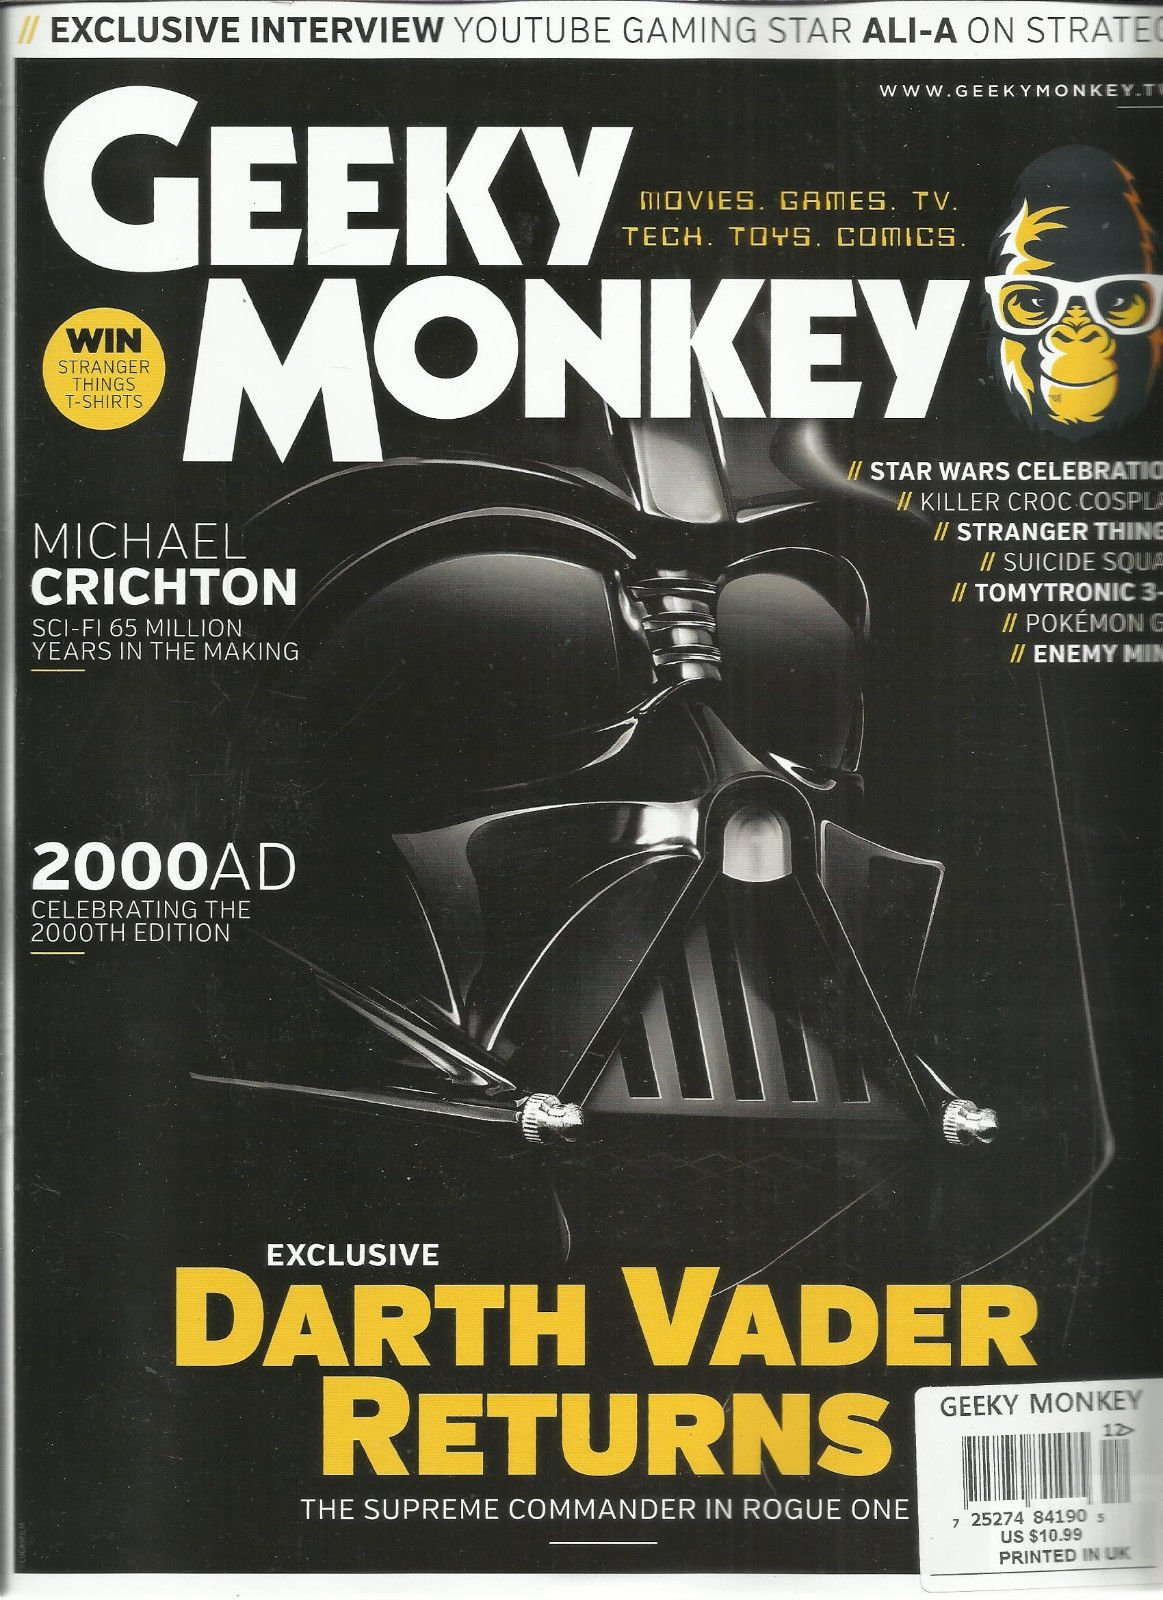 GEEKY MONKEY MAGAZINE, MOVIES, GAMES, TV, TECH, TOYS, COMICS SEPTEMBER, 2016